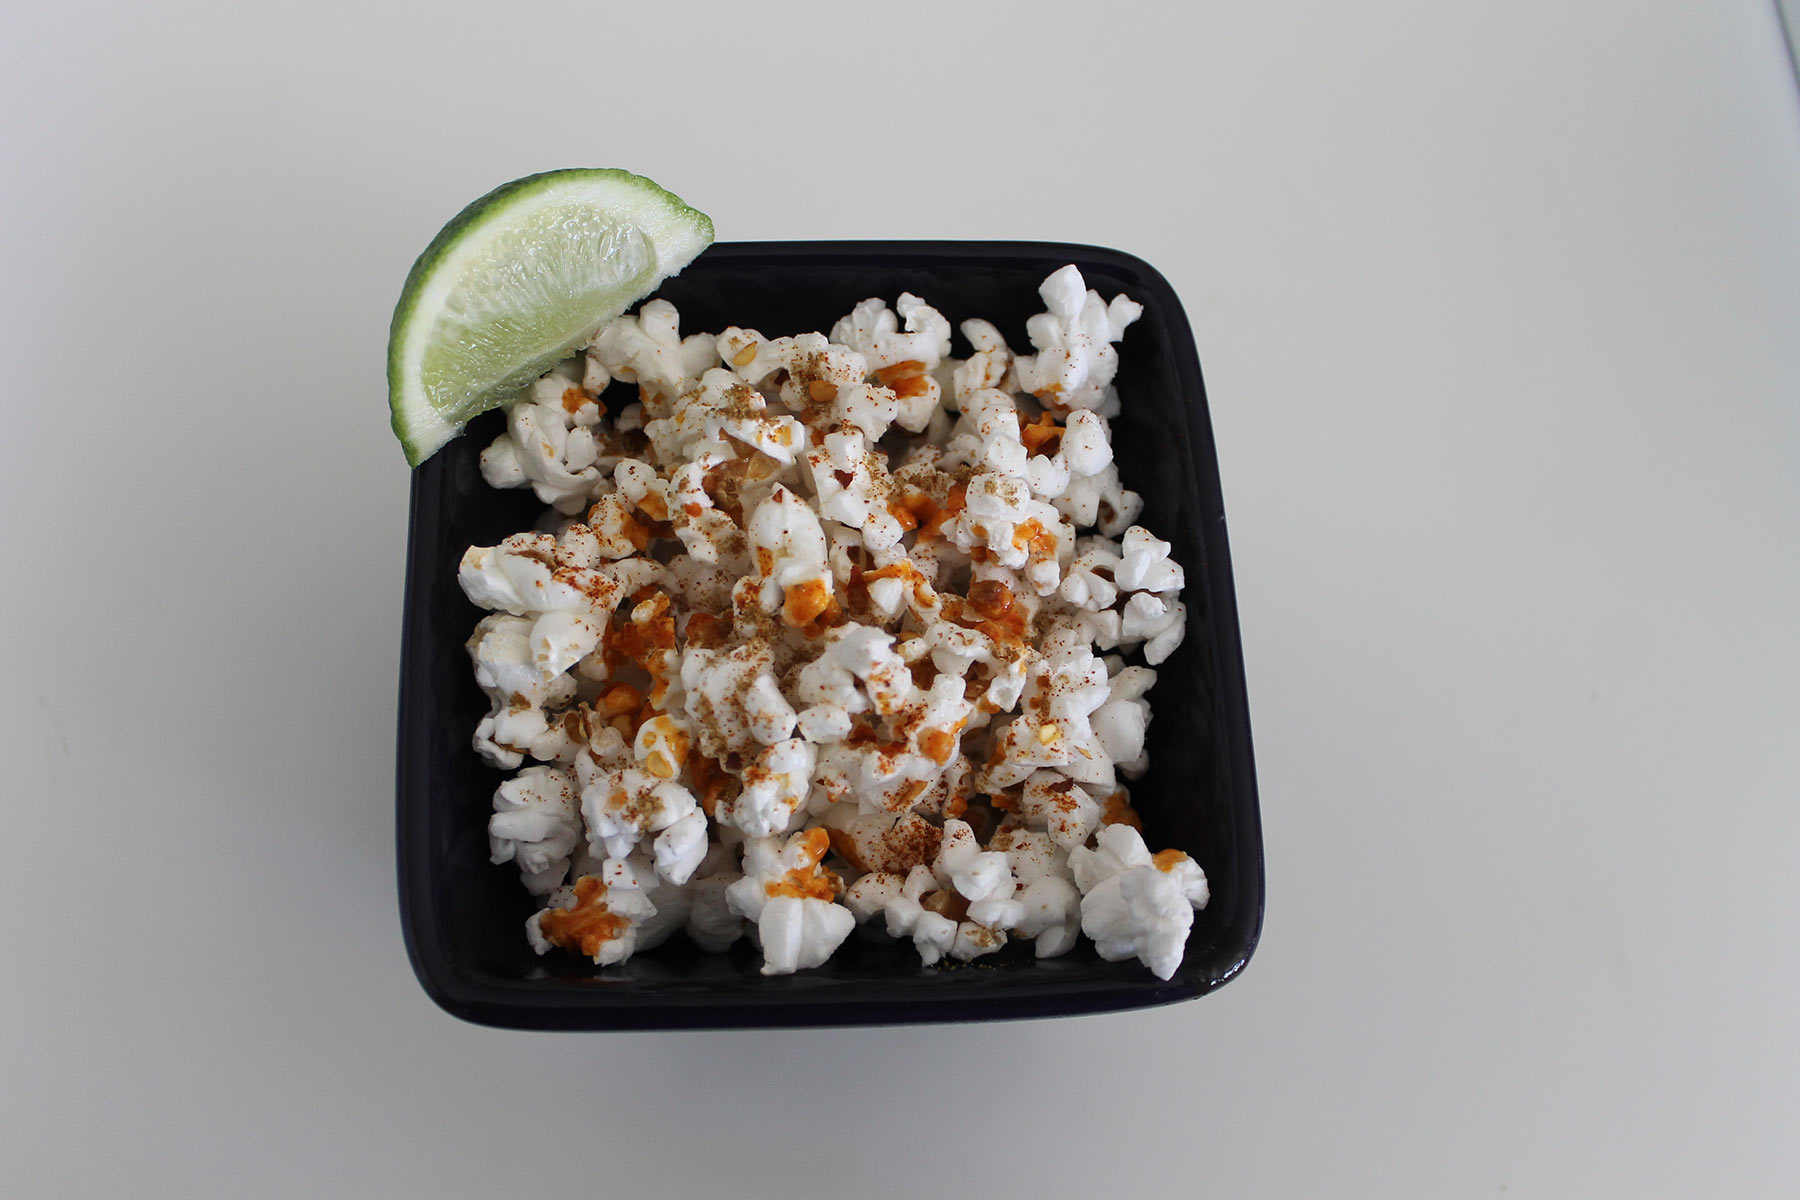 Chili_Lime_Flavored_Popcorn